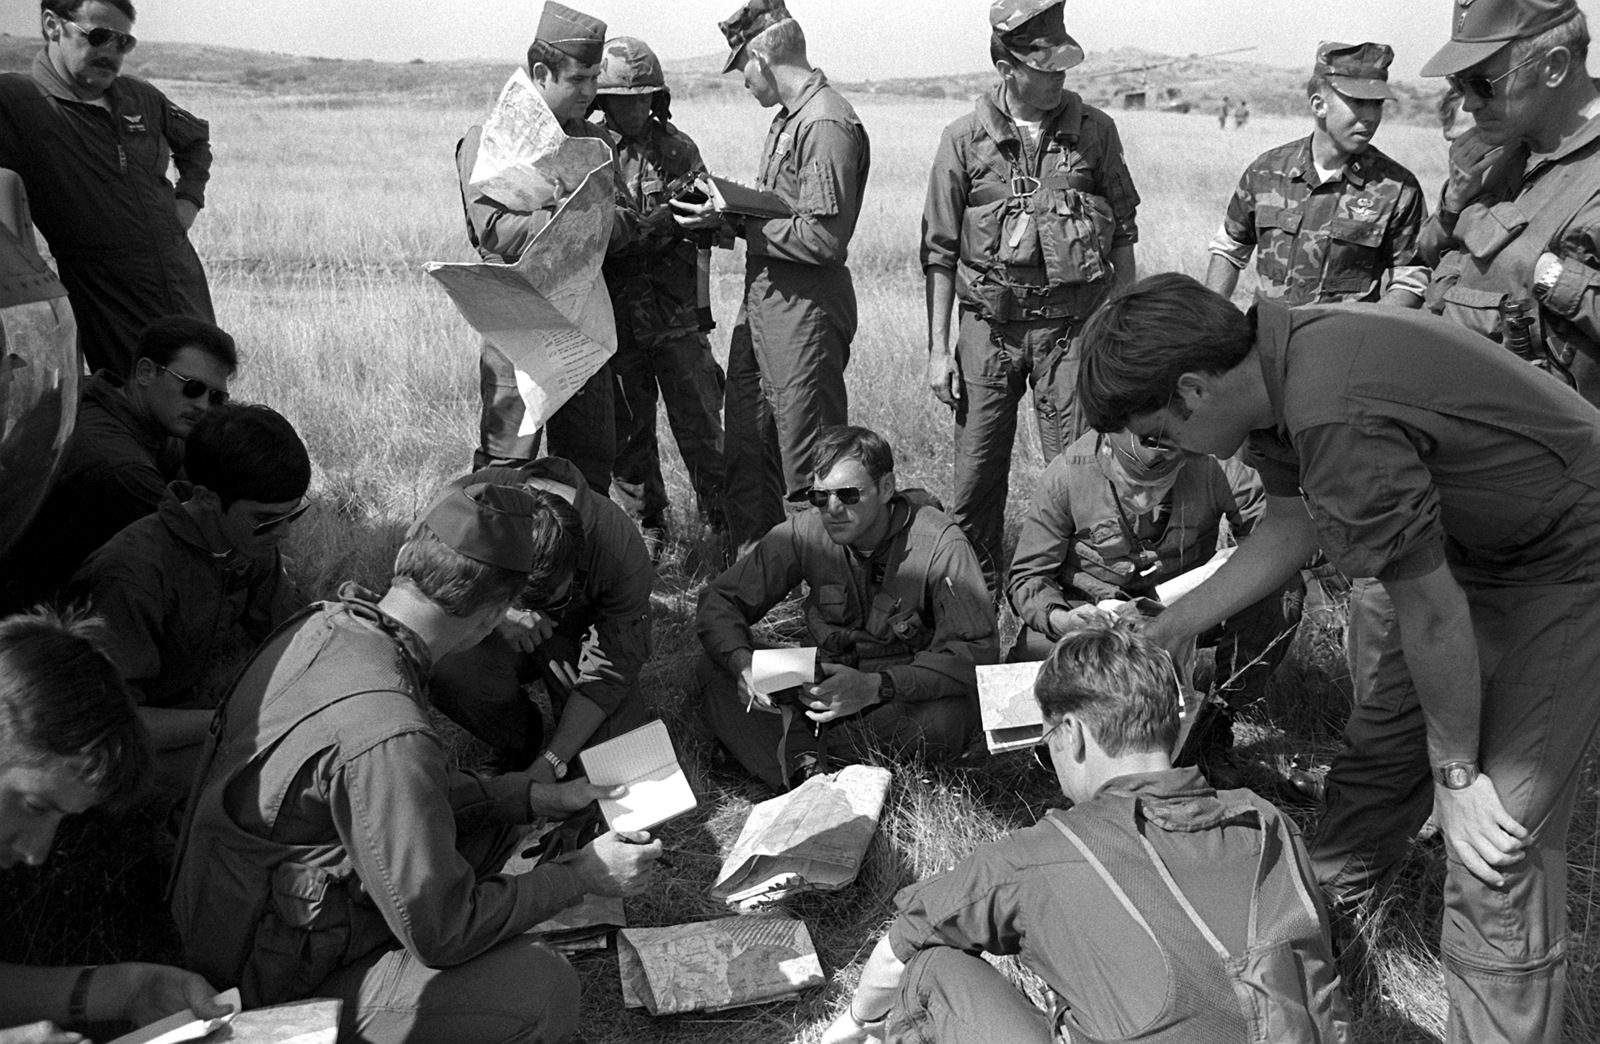 Army helicopter pilots and Marine infantry officers take notes during a briefing prior to an assault on combat town. Marines from Co. F, 2nd Bn., 1ST Marines, are taking part in the field exercise